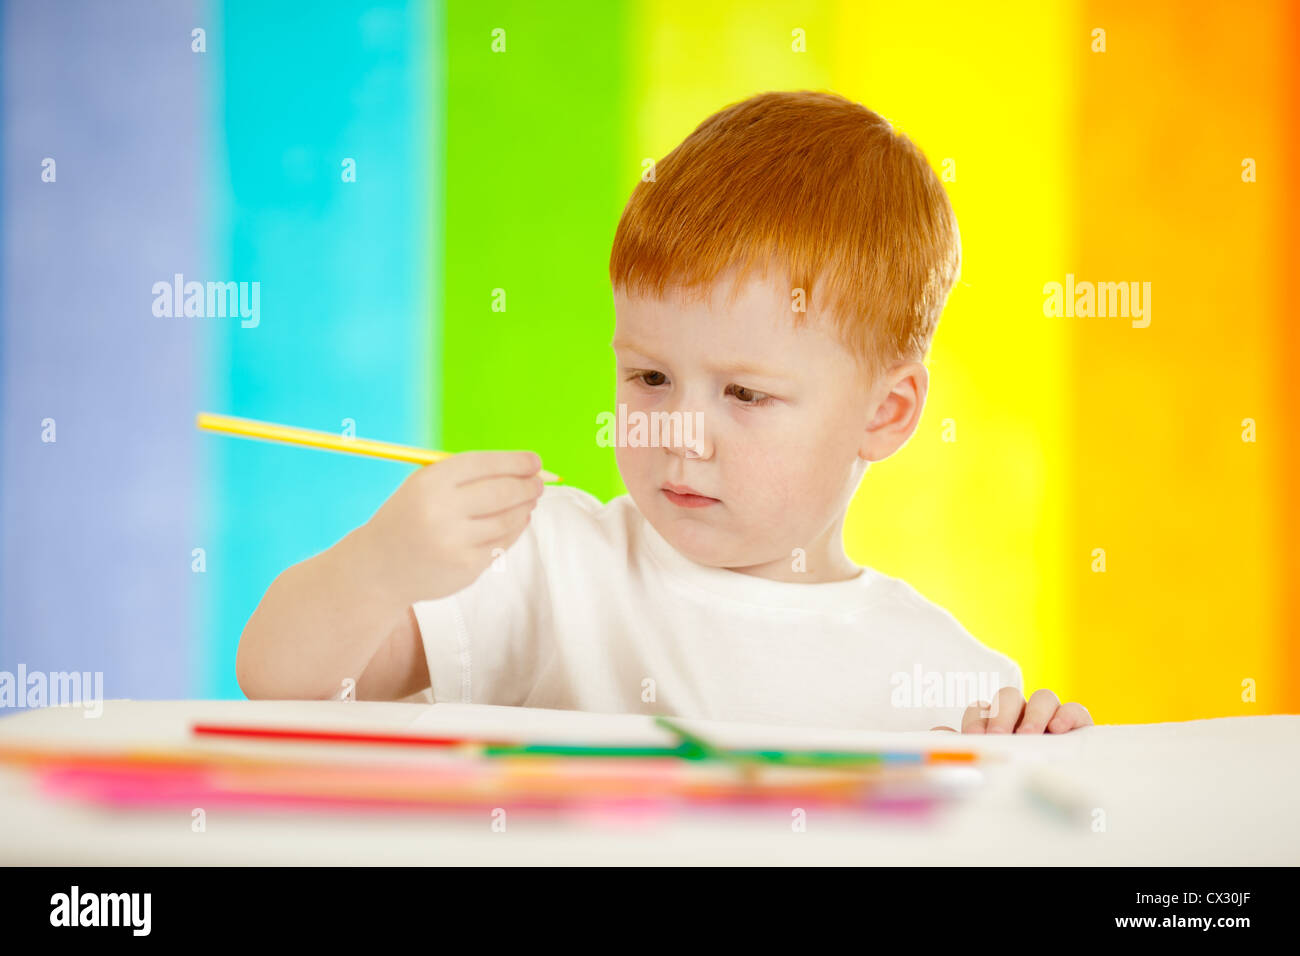 Redheaded adorable boy drawing with yellow pencil on rainbow background Stock Photo